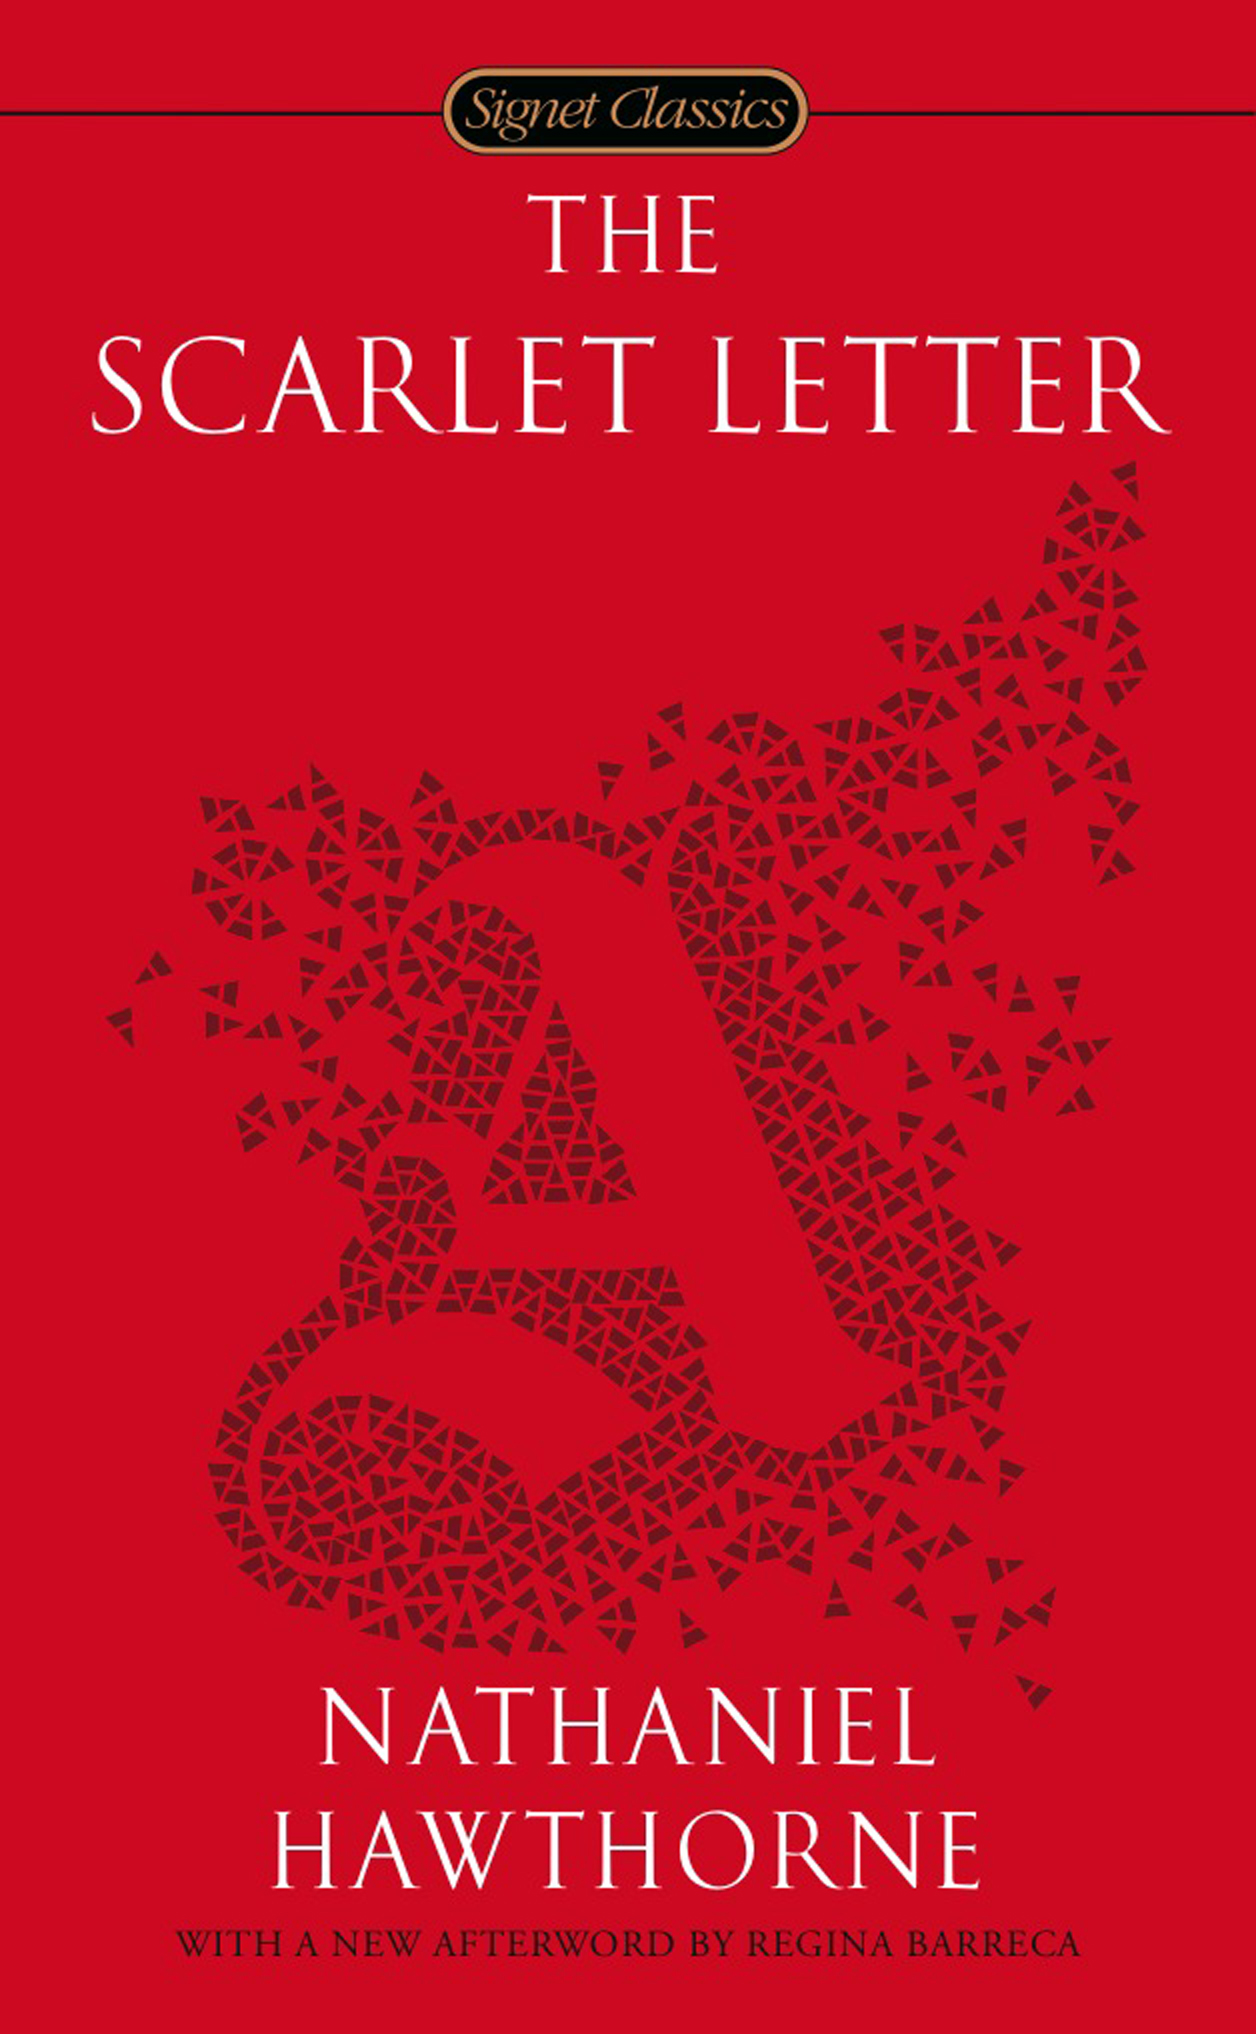 The Scarlet Letter by Nathaniel Hawthorne on southeastbymidwest.com # ...